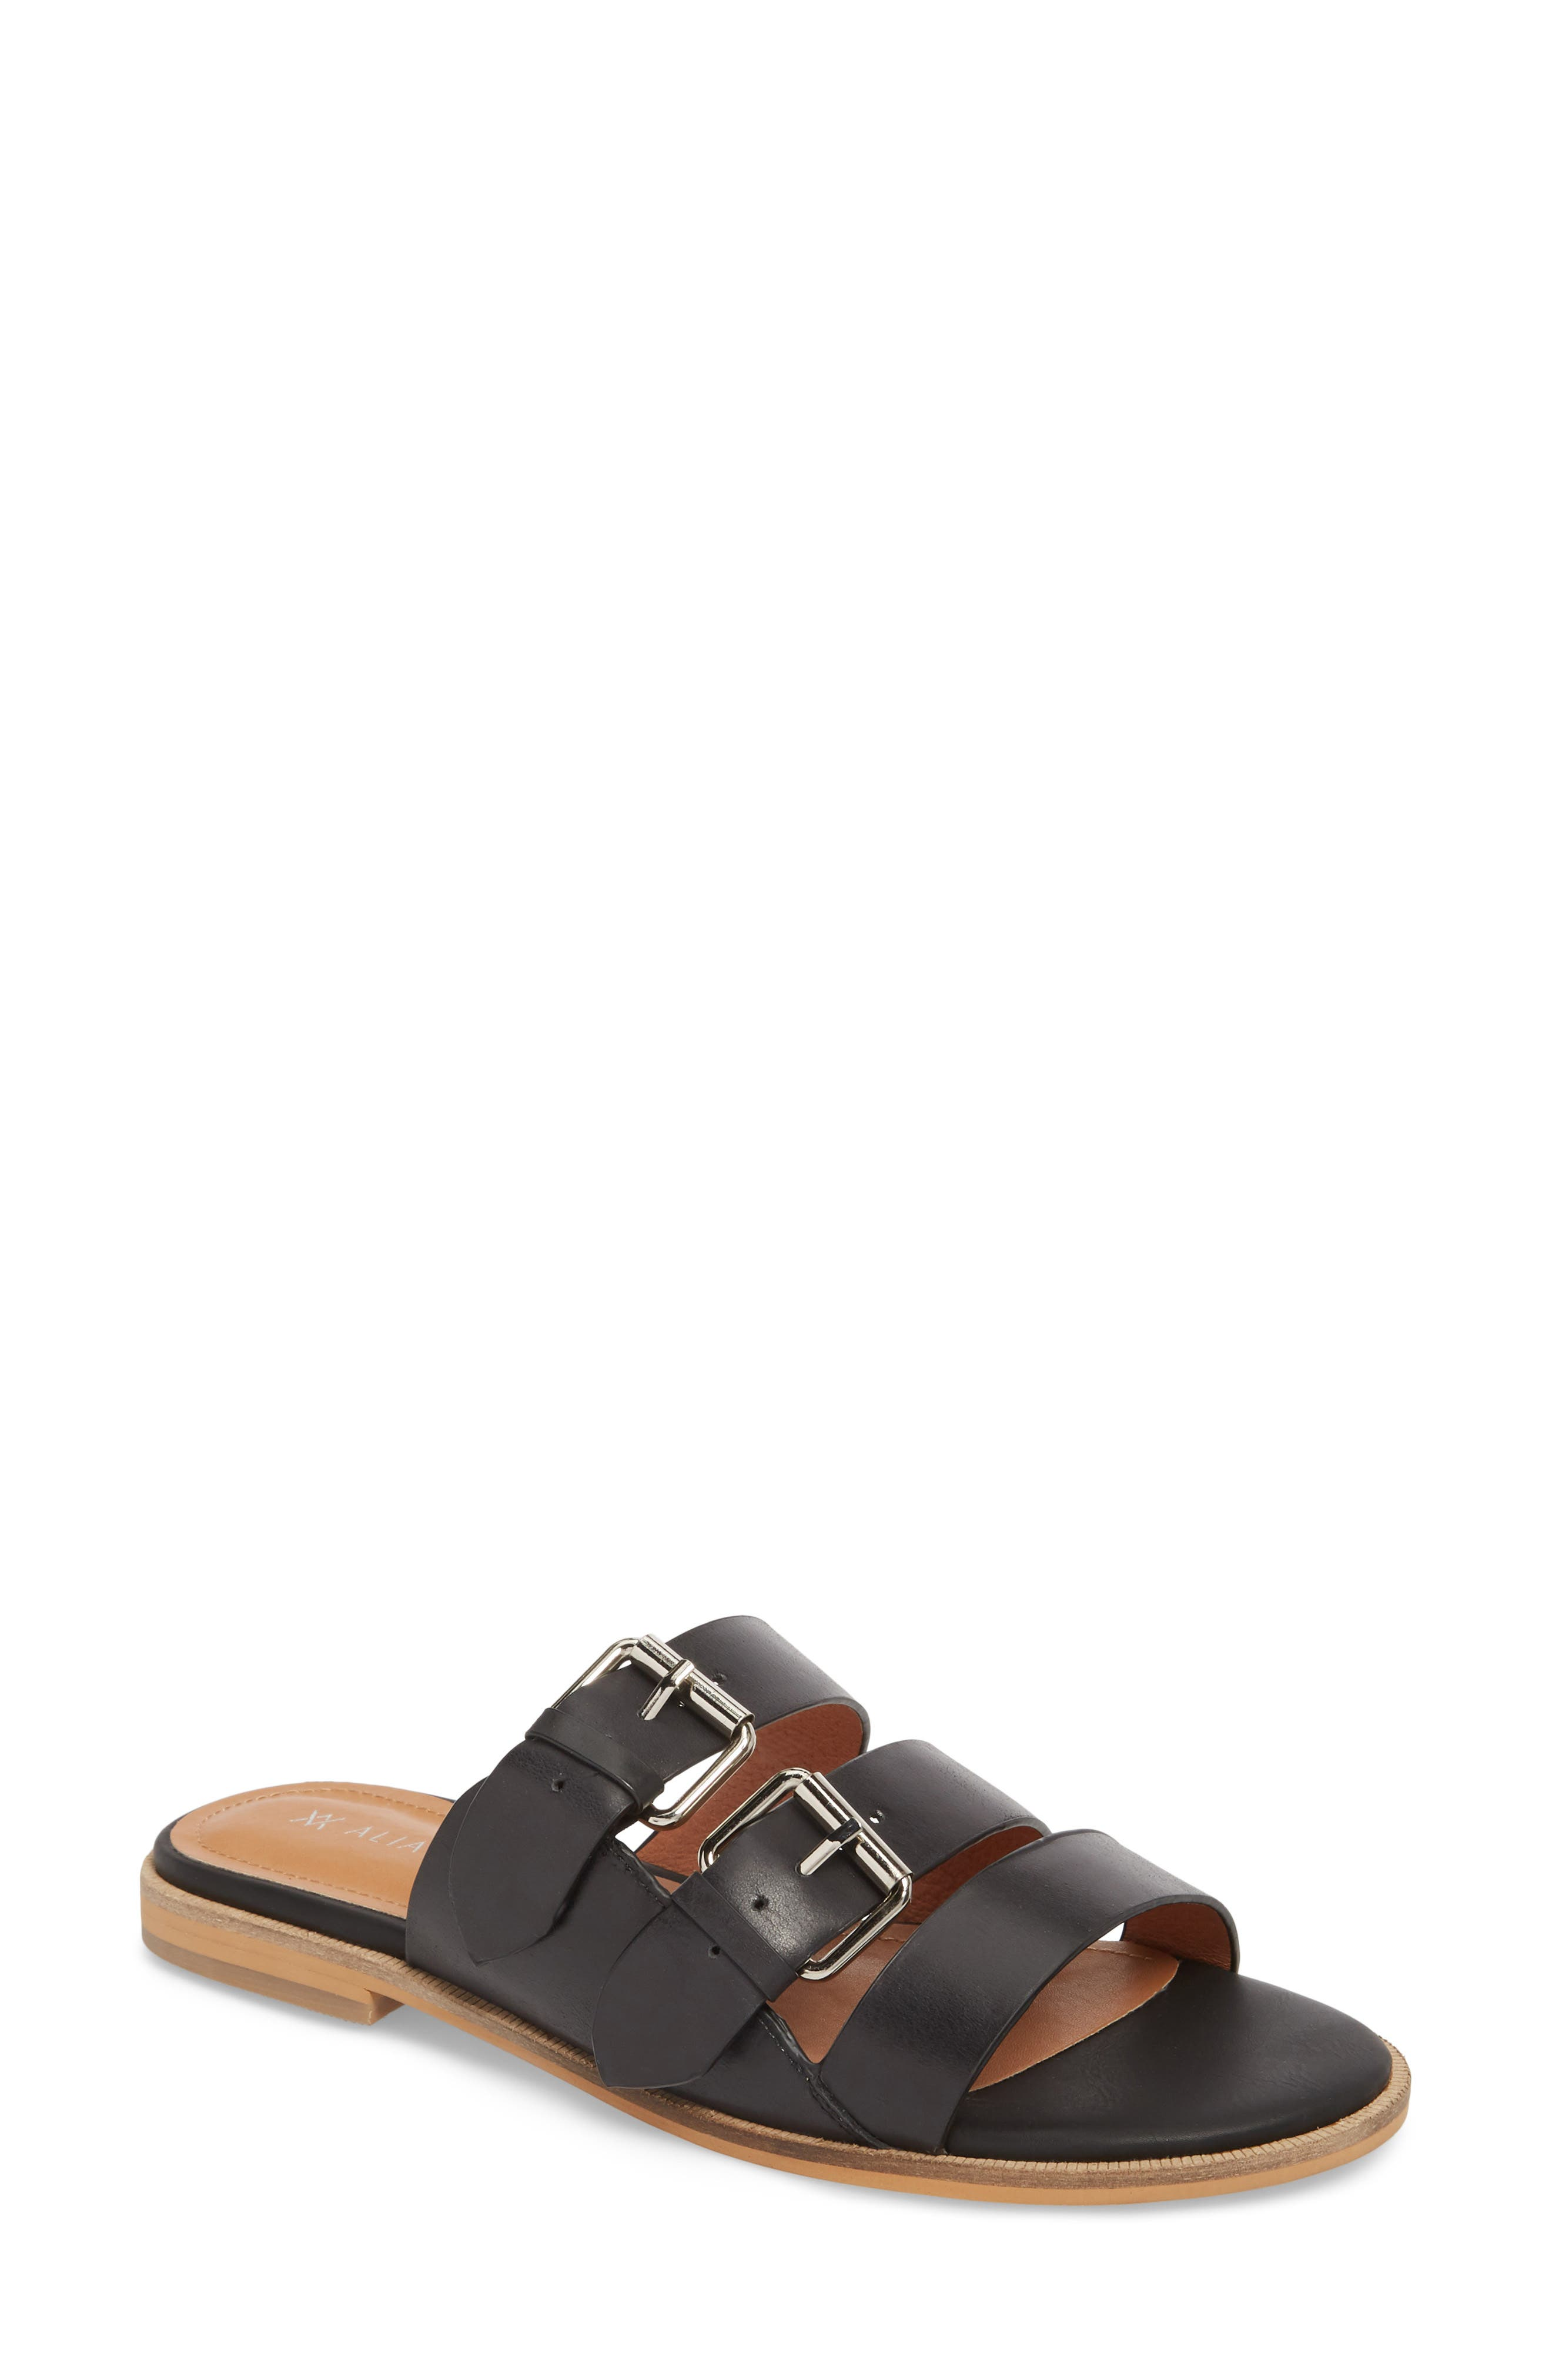 Theatre Buckled Slide Sandal,                         Main,                         color, BLACK LEATHER